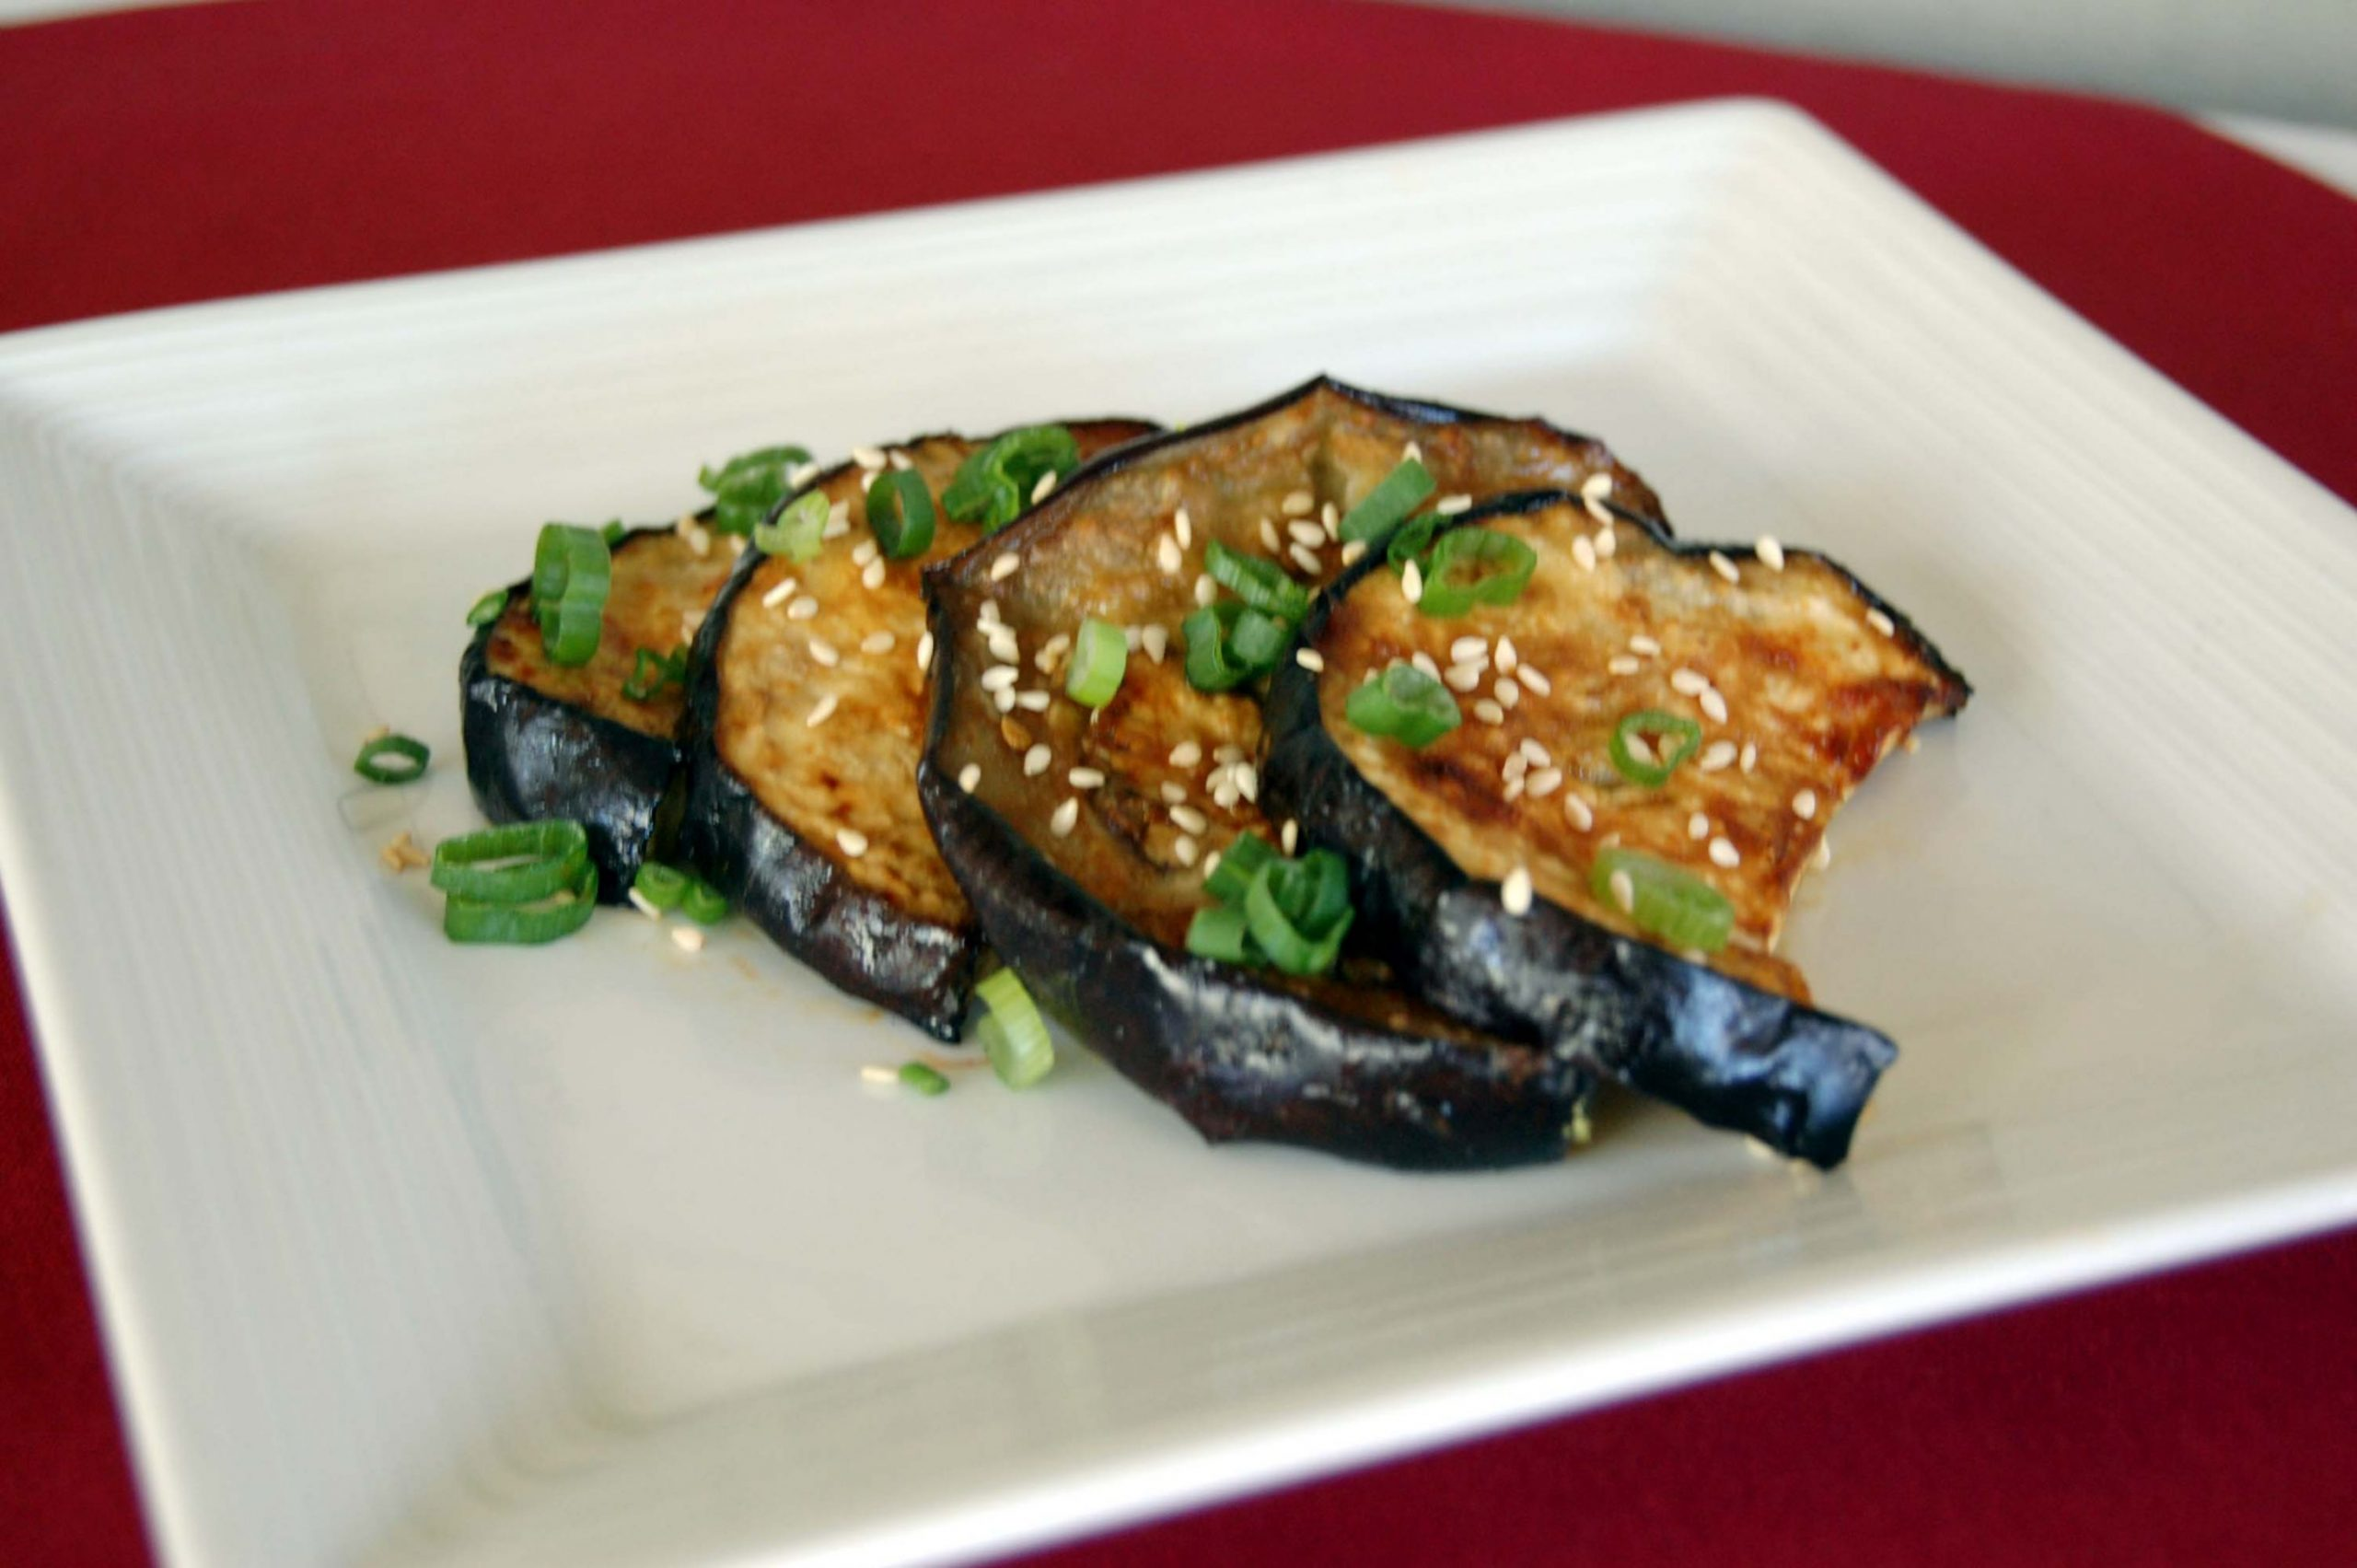 Healthy Recipes: Asian Style Eggplant - Healthy Recipes Eggplant